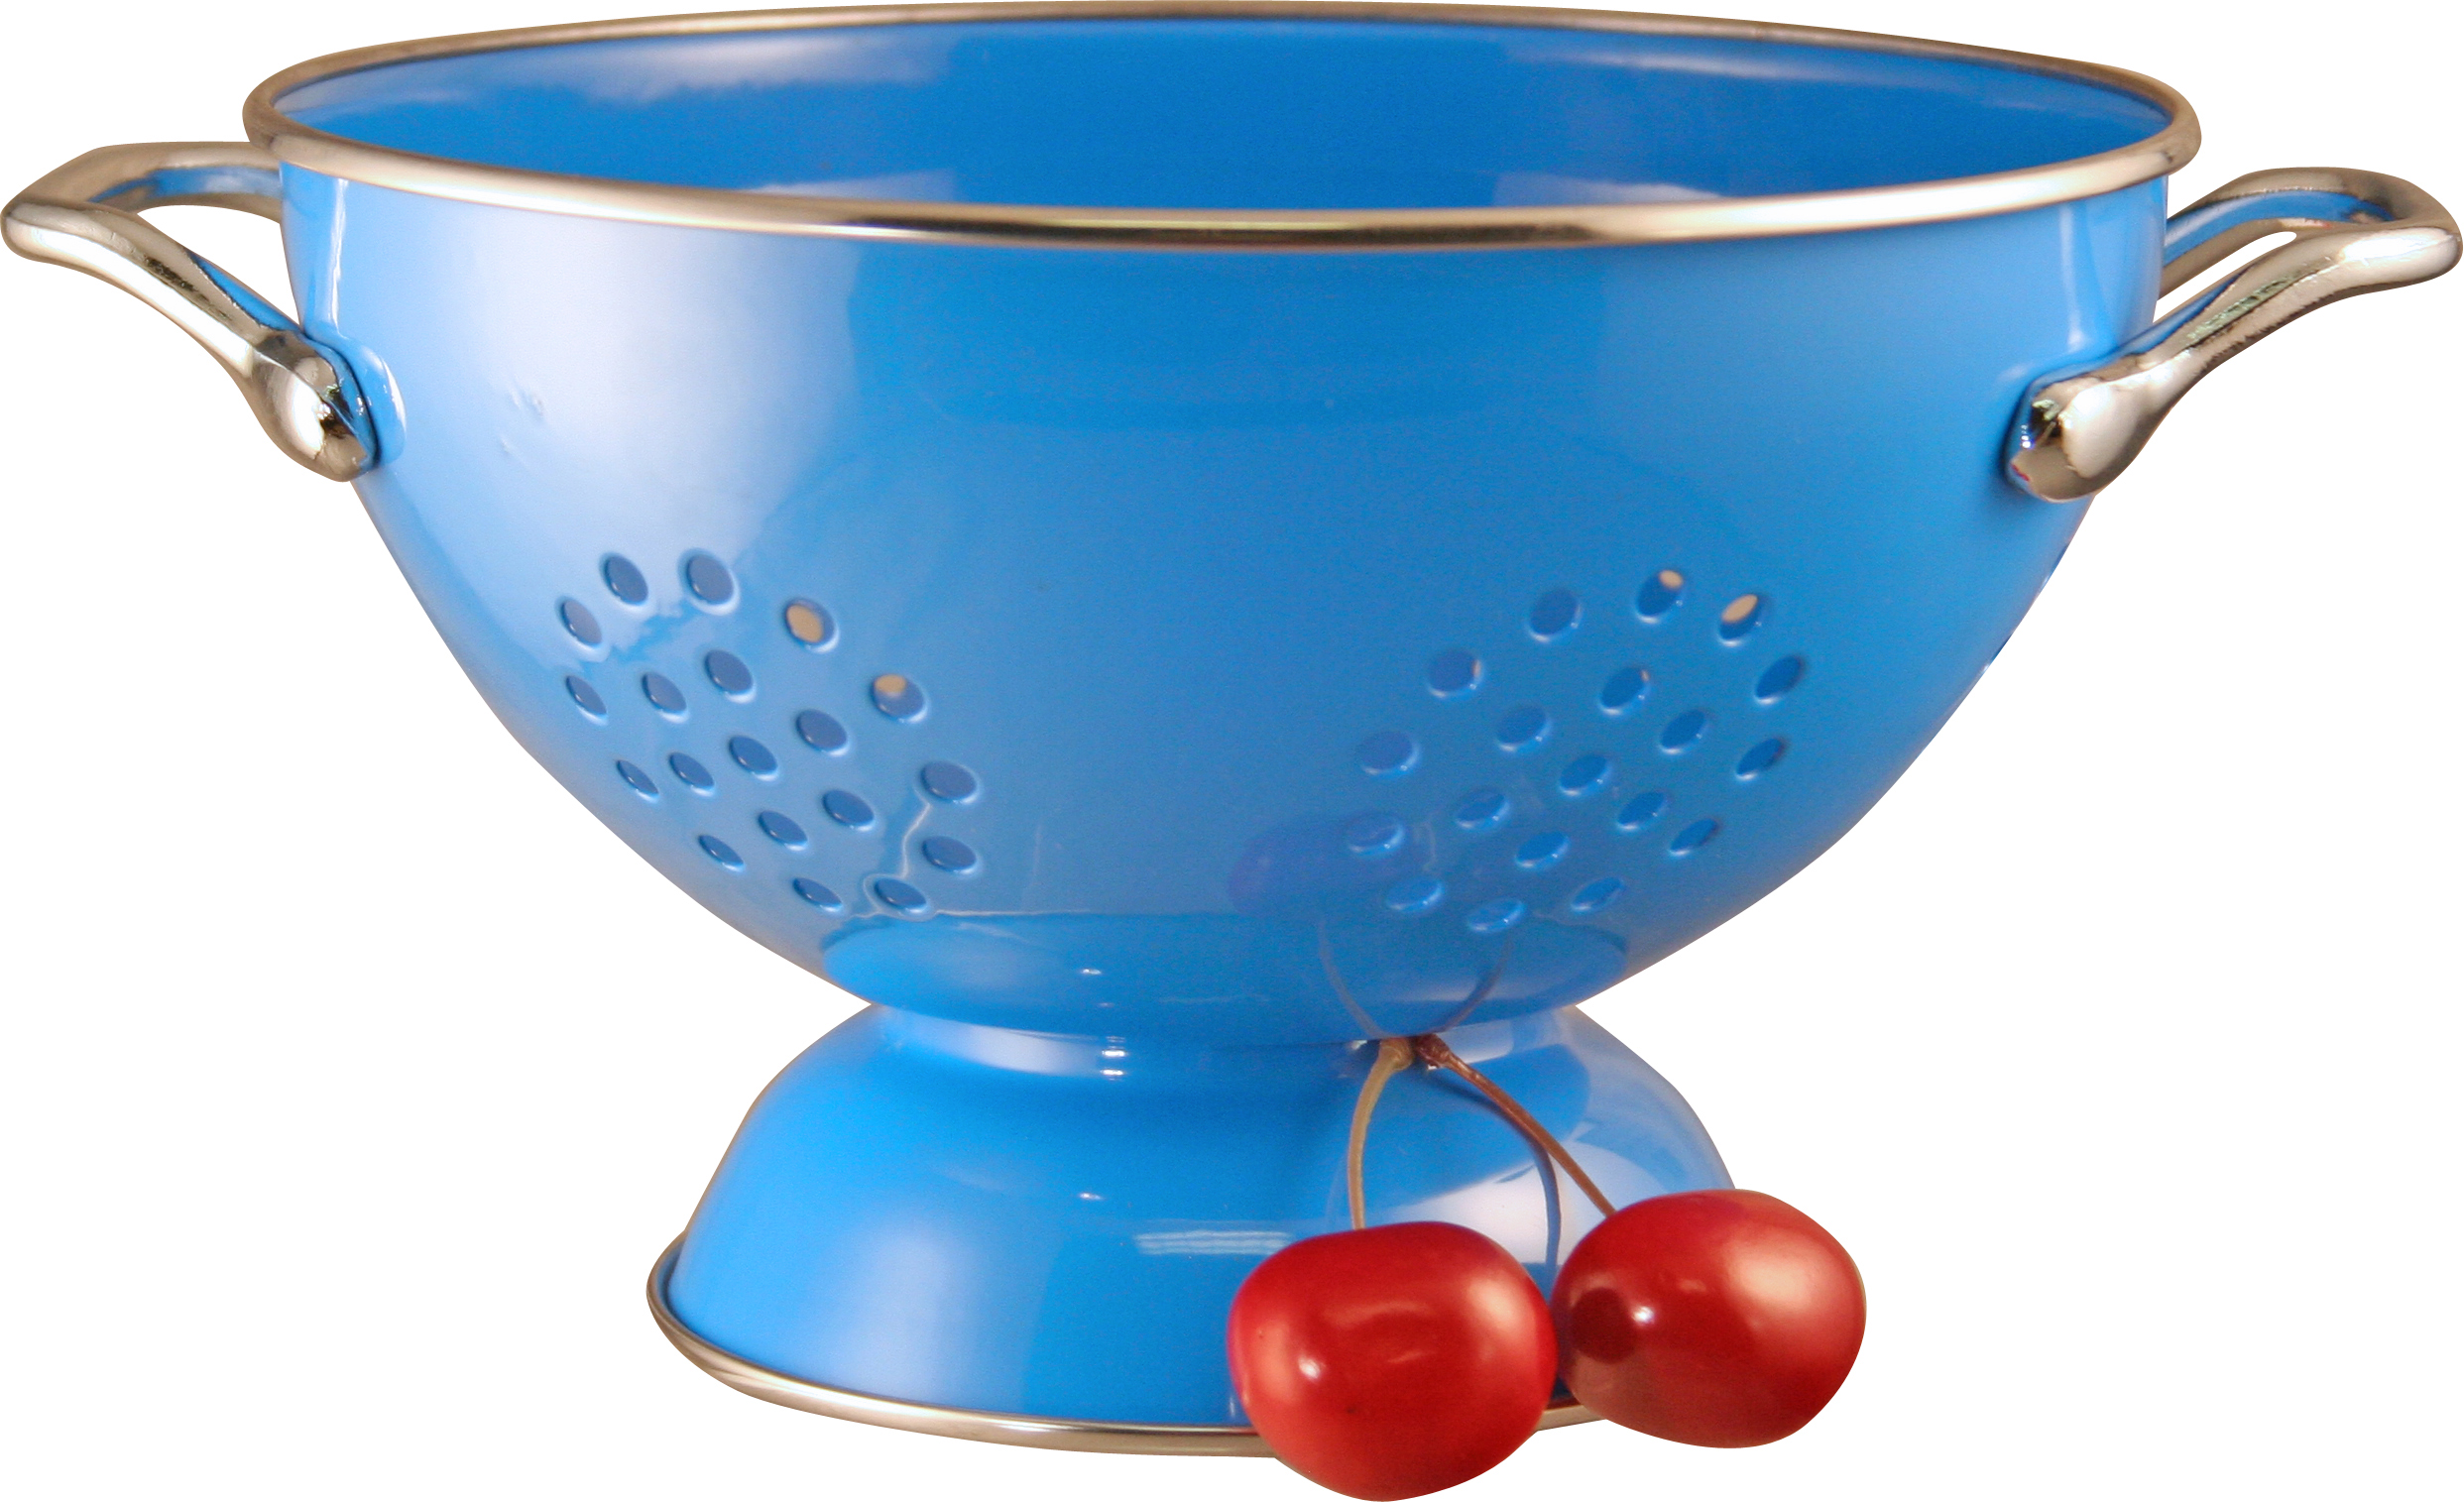 Enamel Coated Colander